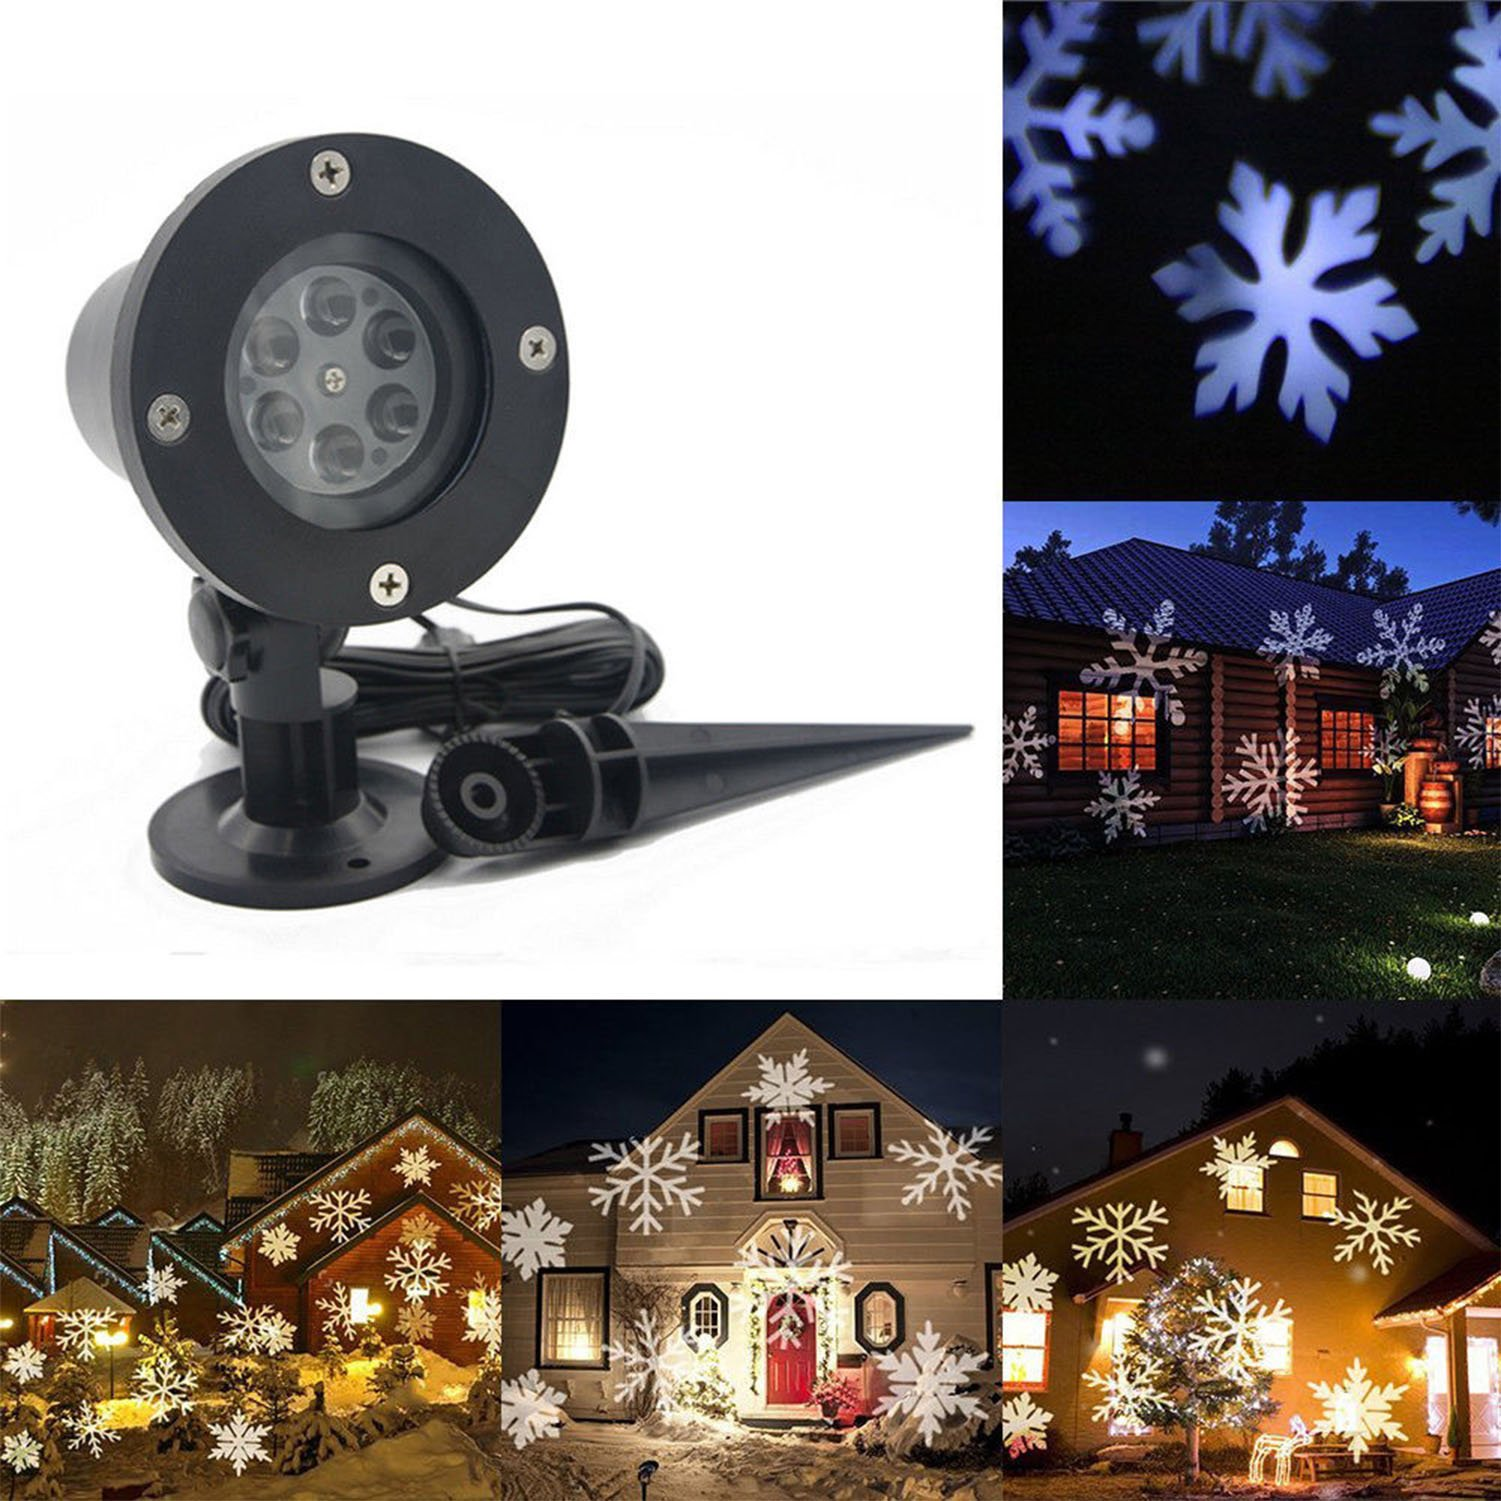 Christmas Projector Light Outdoor, LED Snowfall Rotating Snowflake Projector Lamp Waterproof for New Year Patio Garden